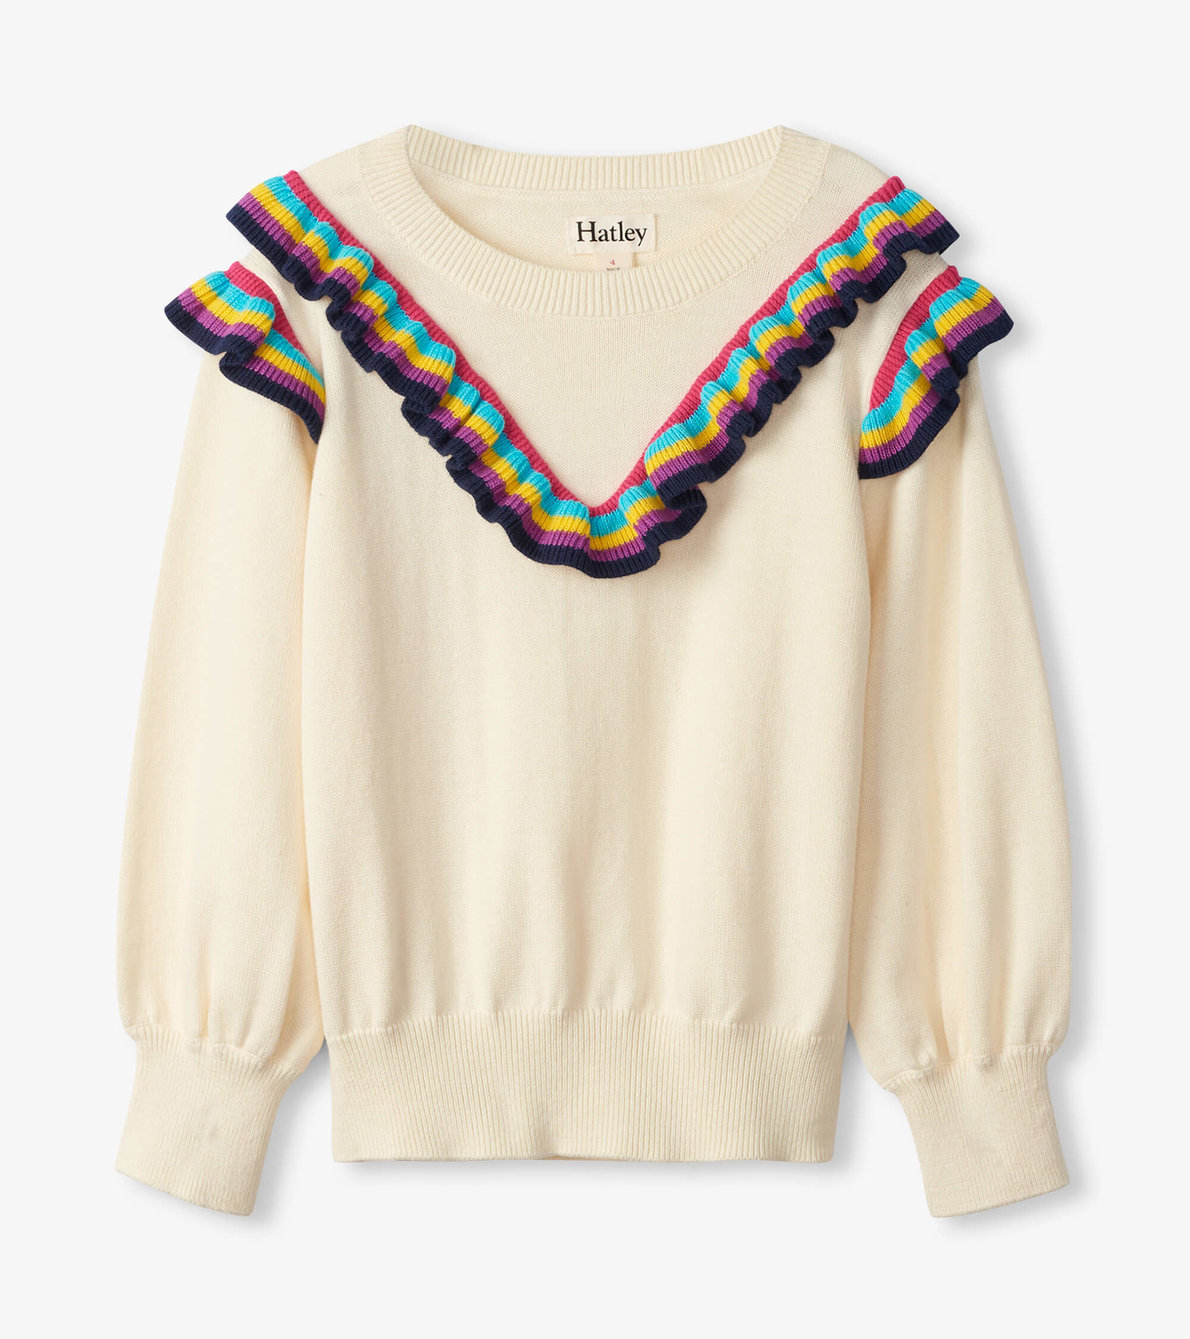 View larger image of Rainbow Ruffle Sweater